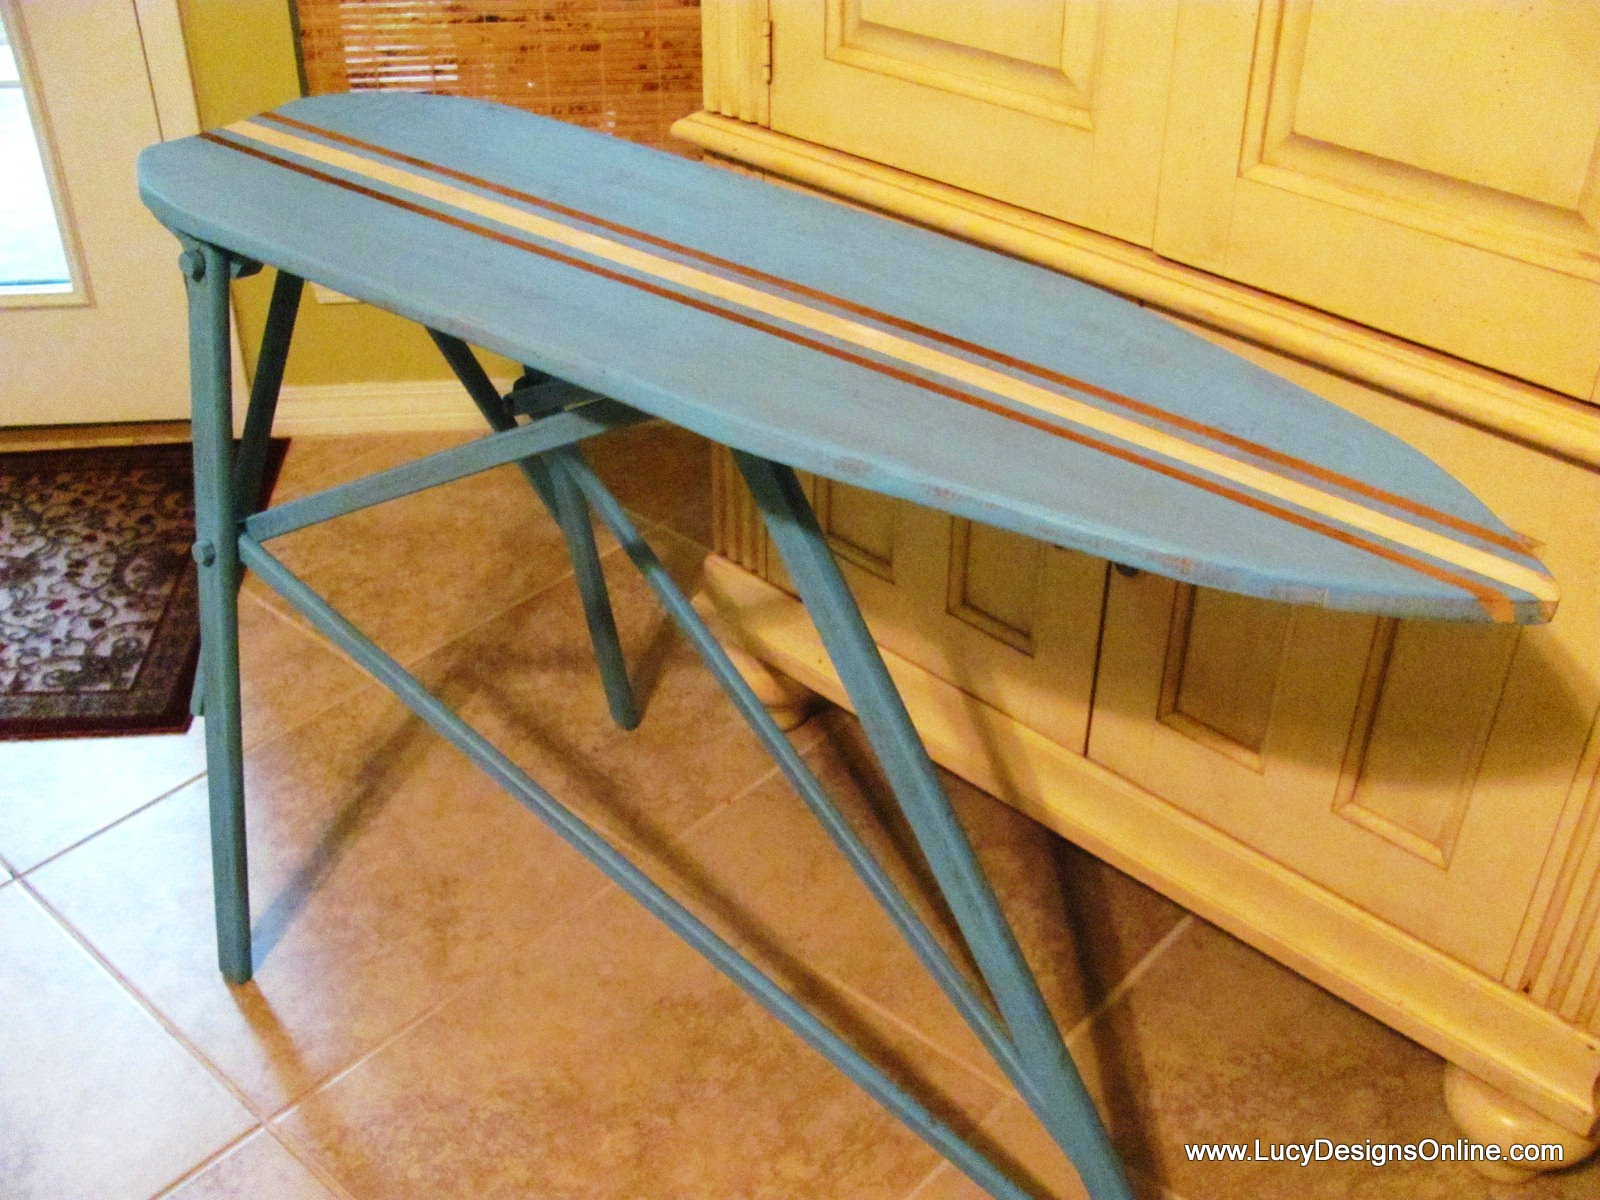 Ironing Table Designs : Ironing Table Designs/and Ironing Board Holder Wall Mount » Home ...